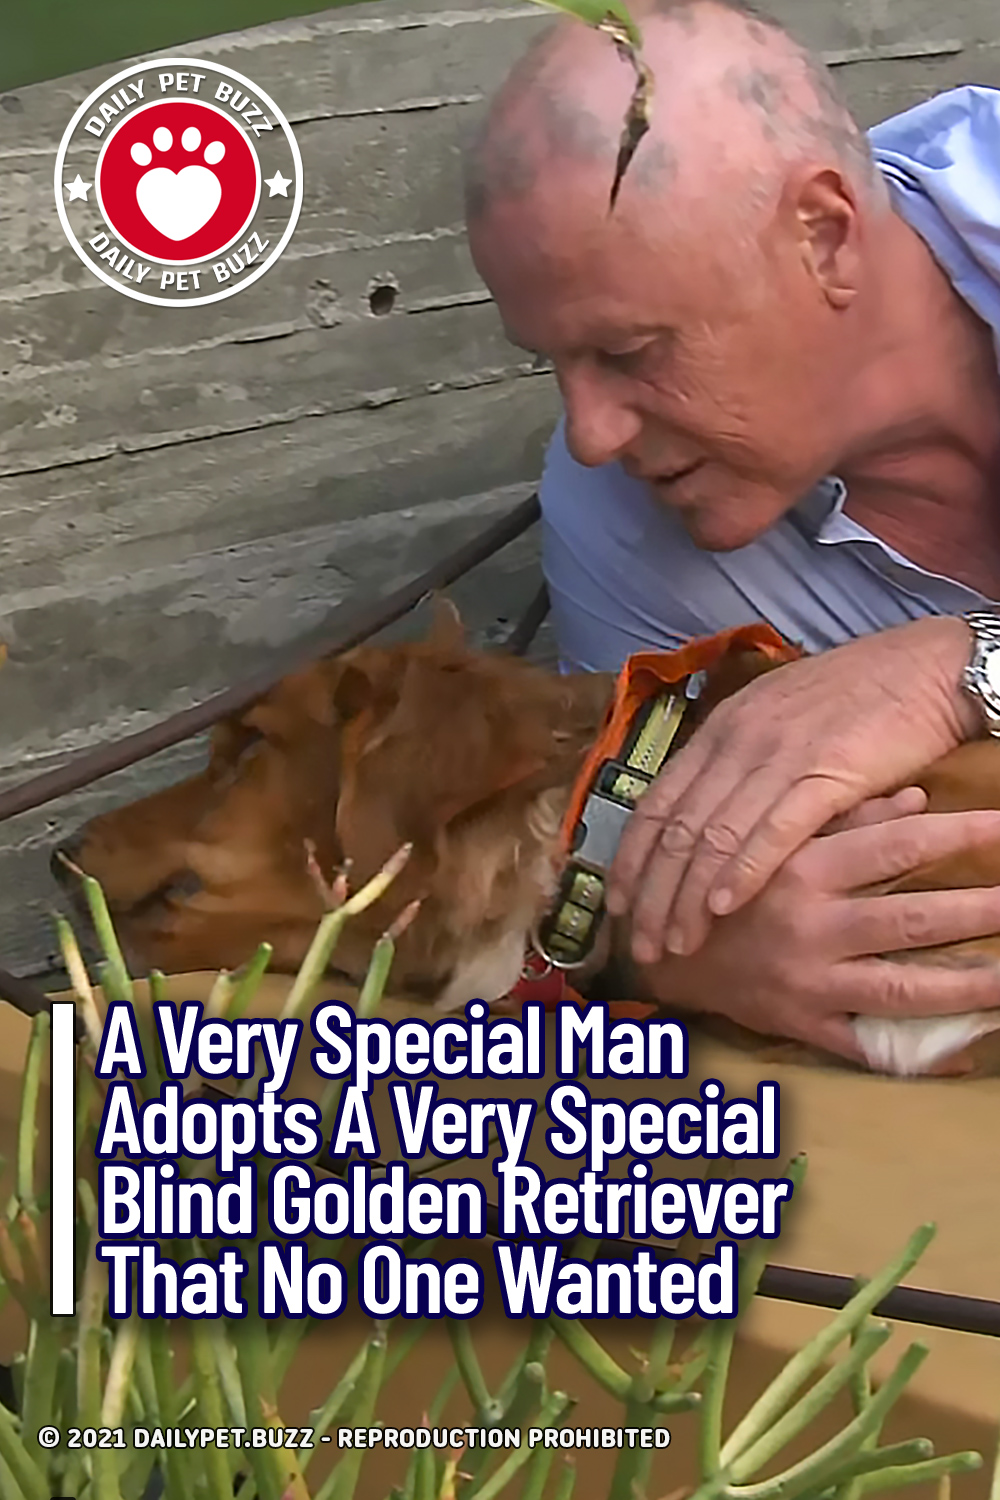 A Very Special Man Adopts A Very Special Blind Golden Retriever That No One Wanted